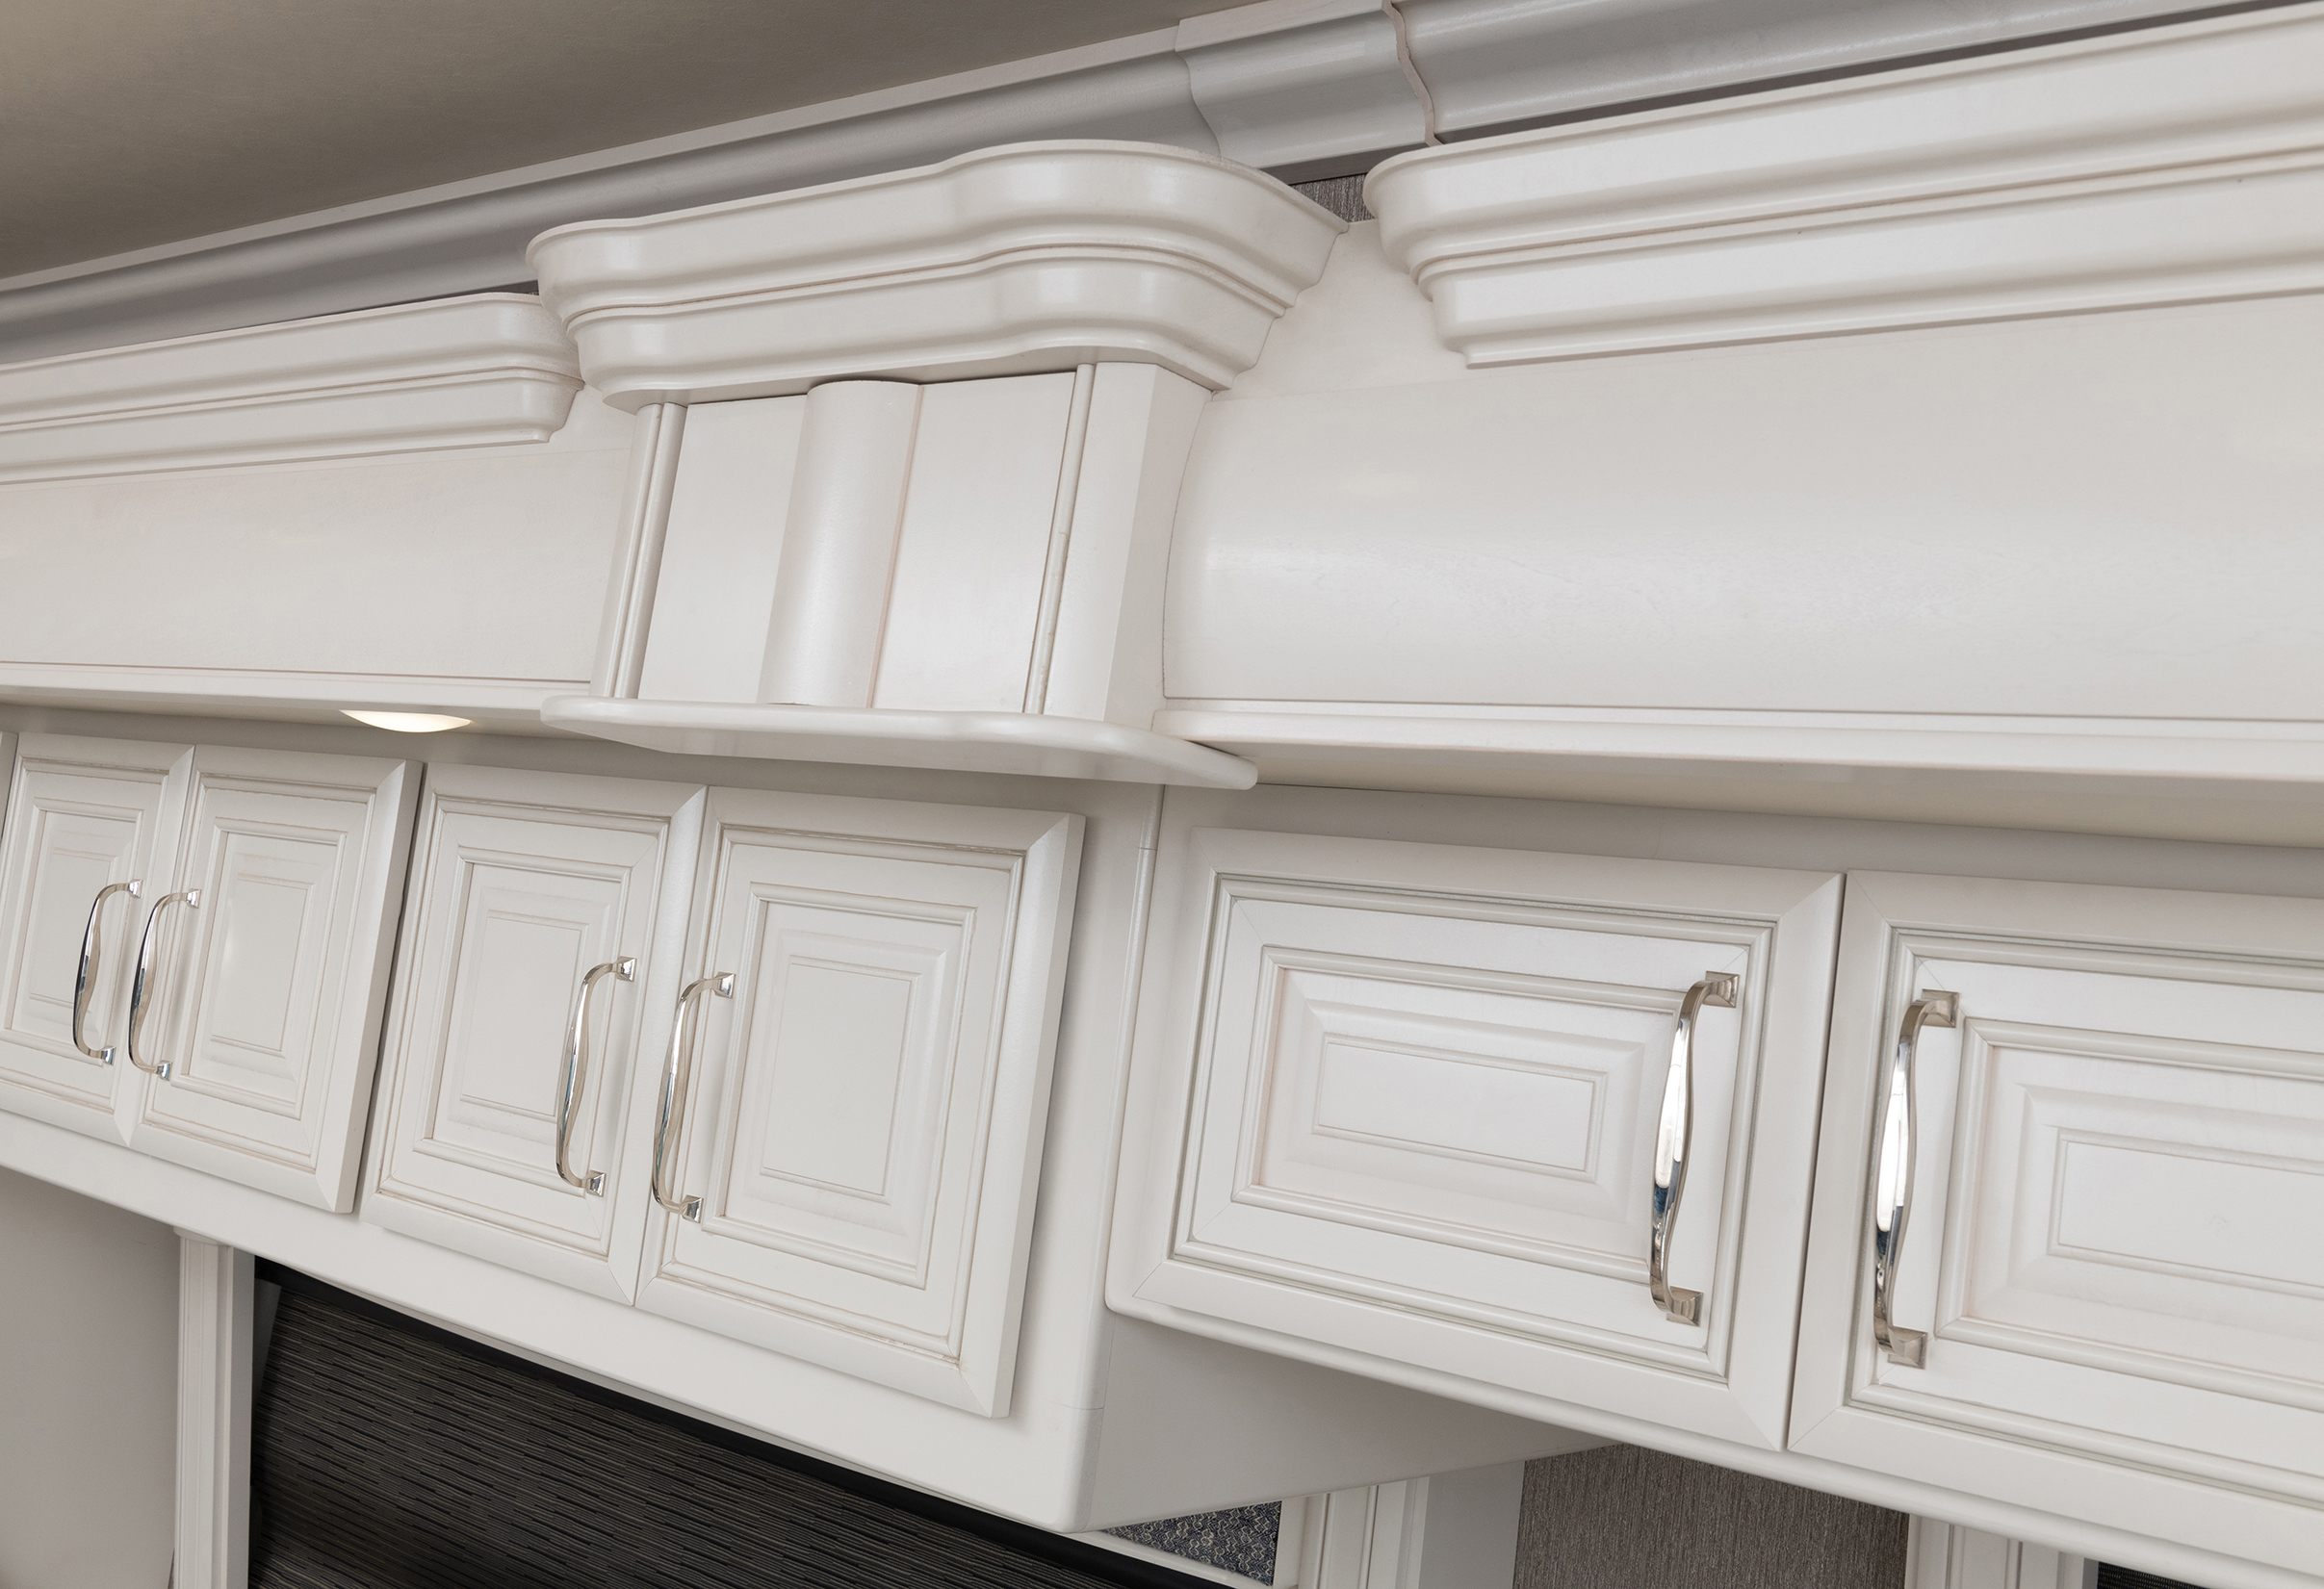 17 edgecomb cabinetry 45 K Dream4684